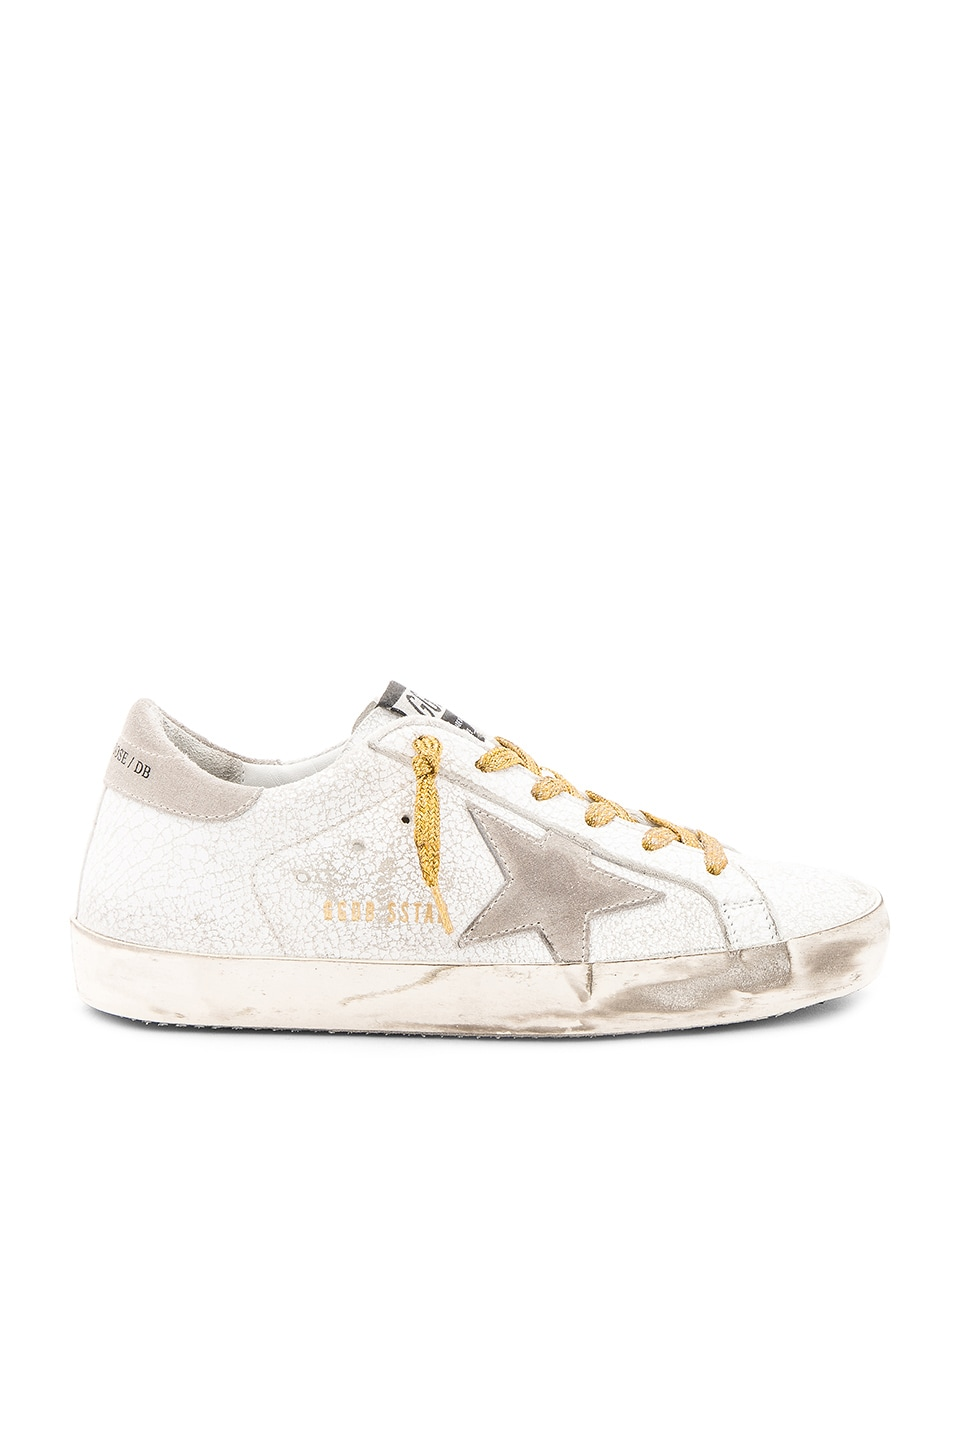 Golden Goose Superstar Sneaker in White Crash Leather